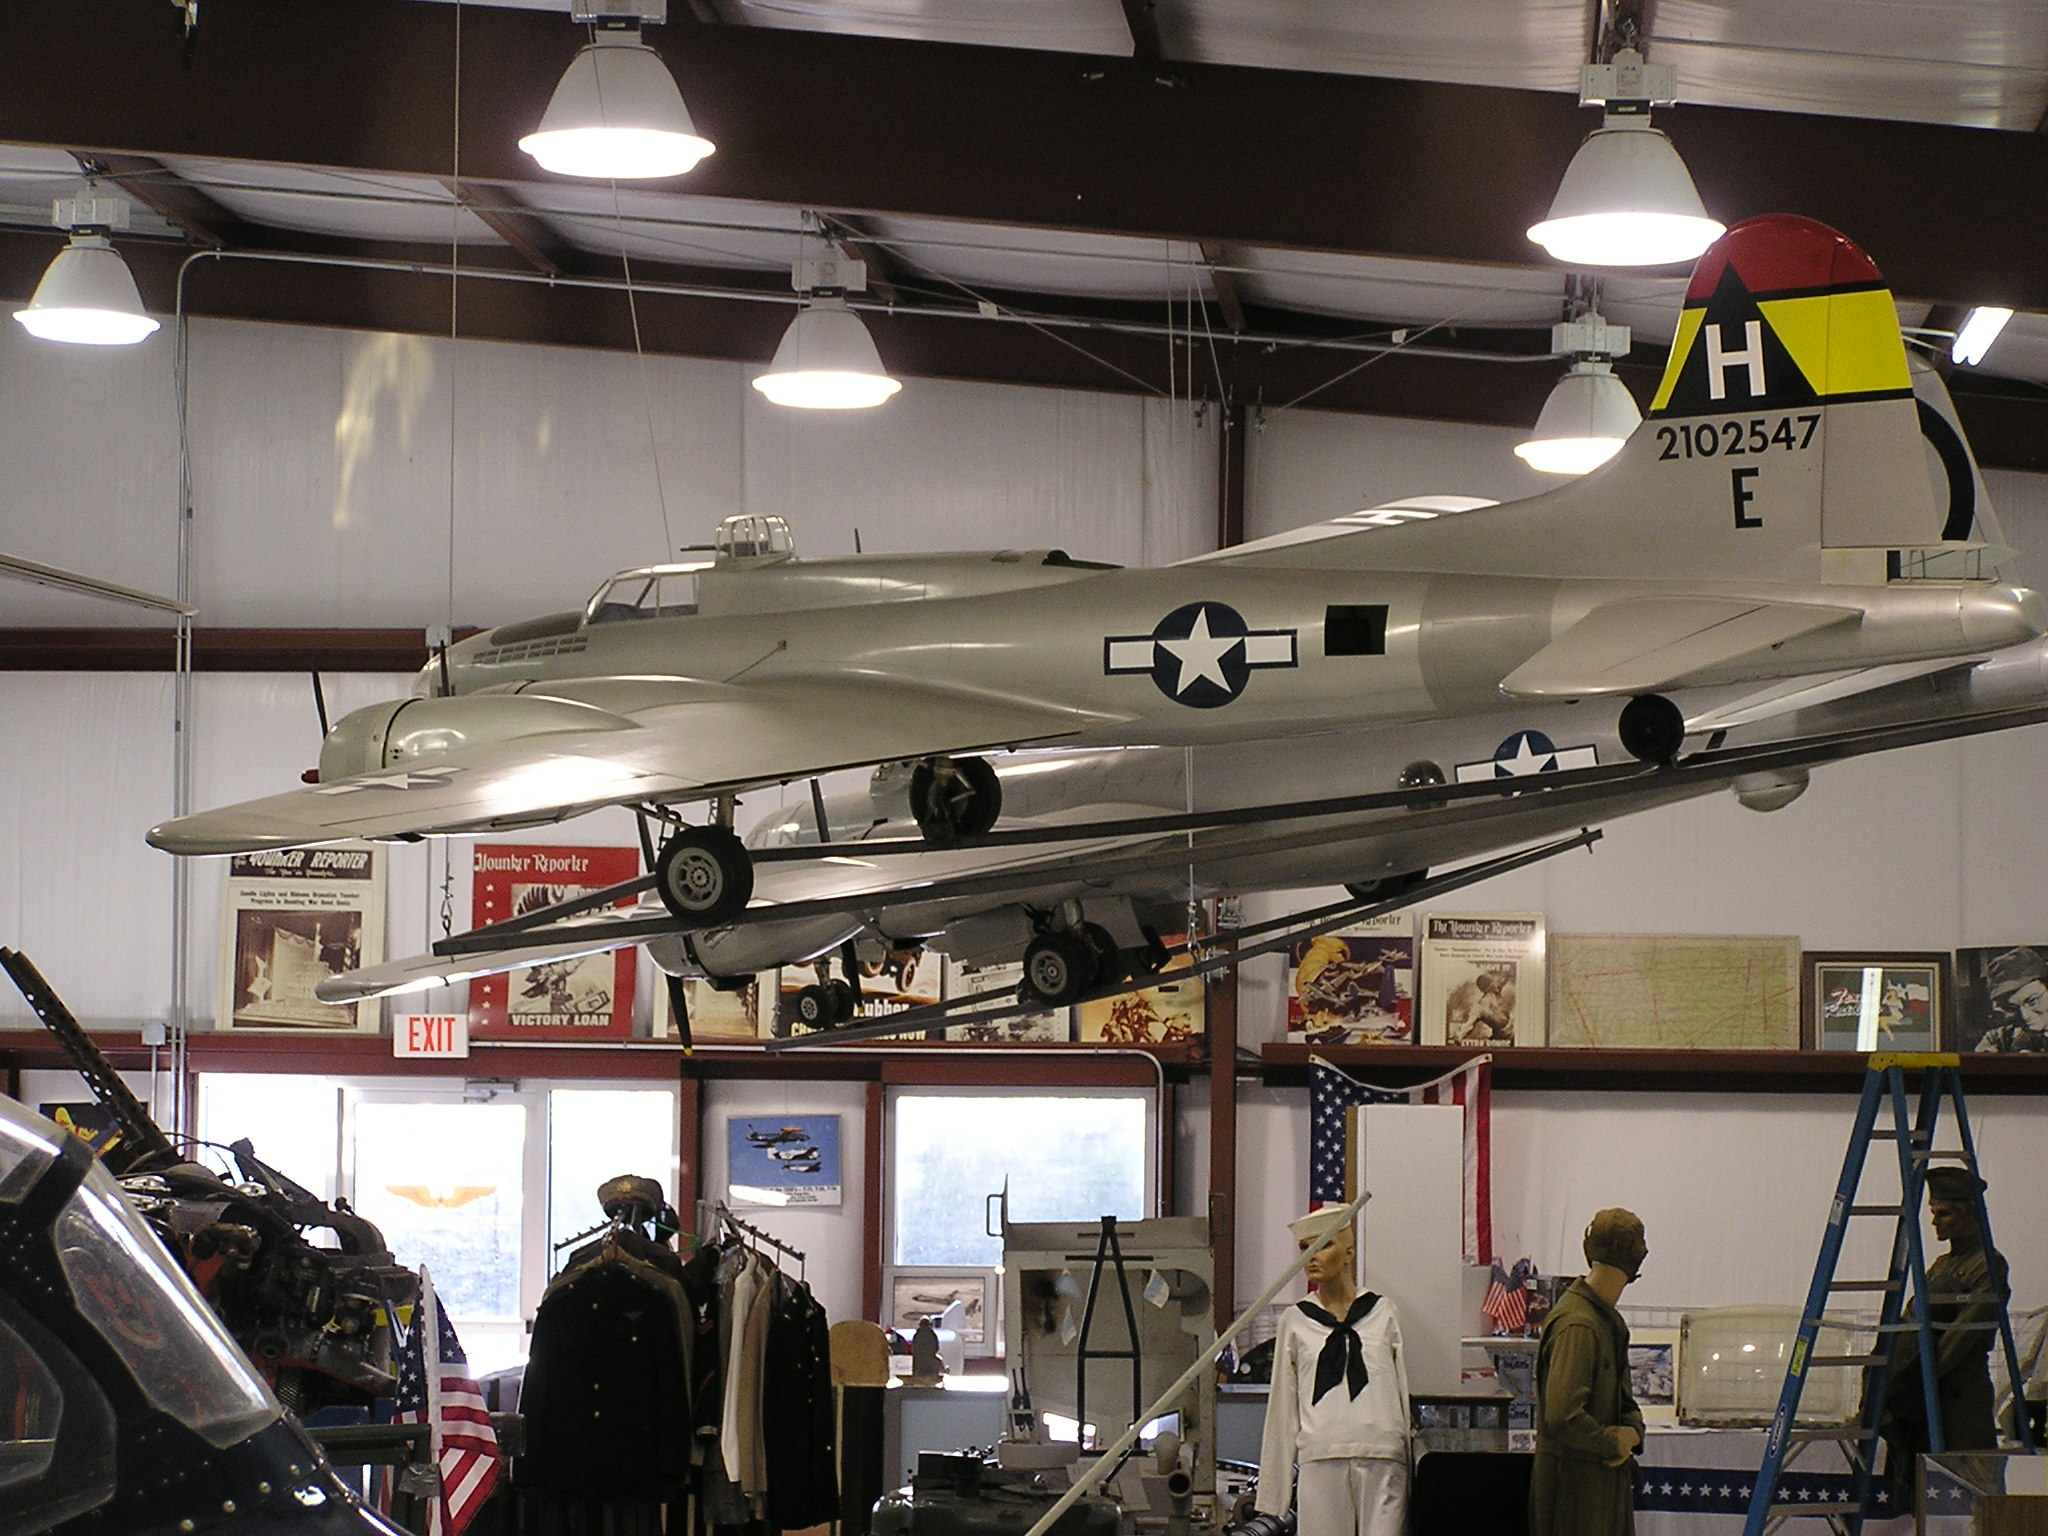 Two of the large models hanging from the ceiling